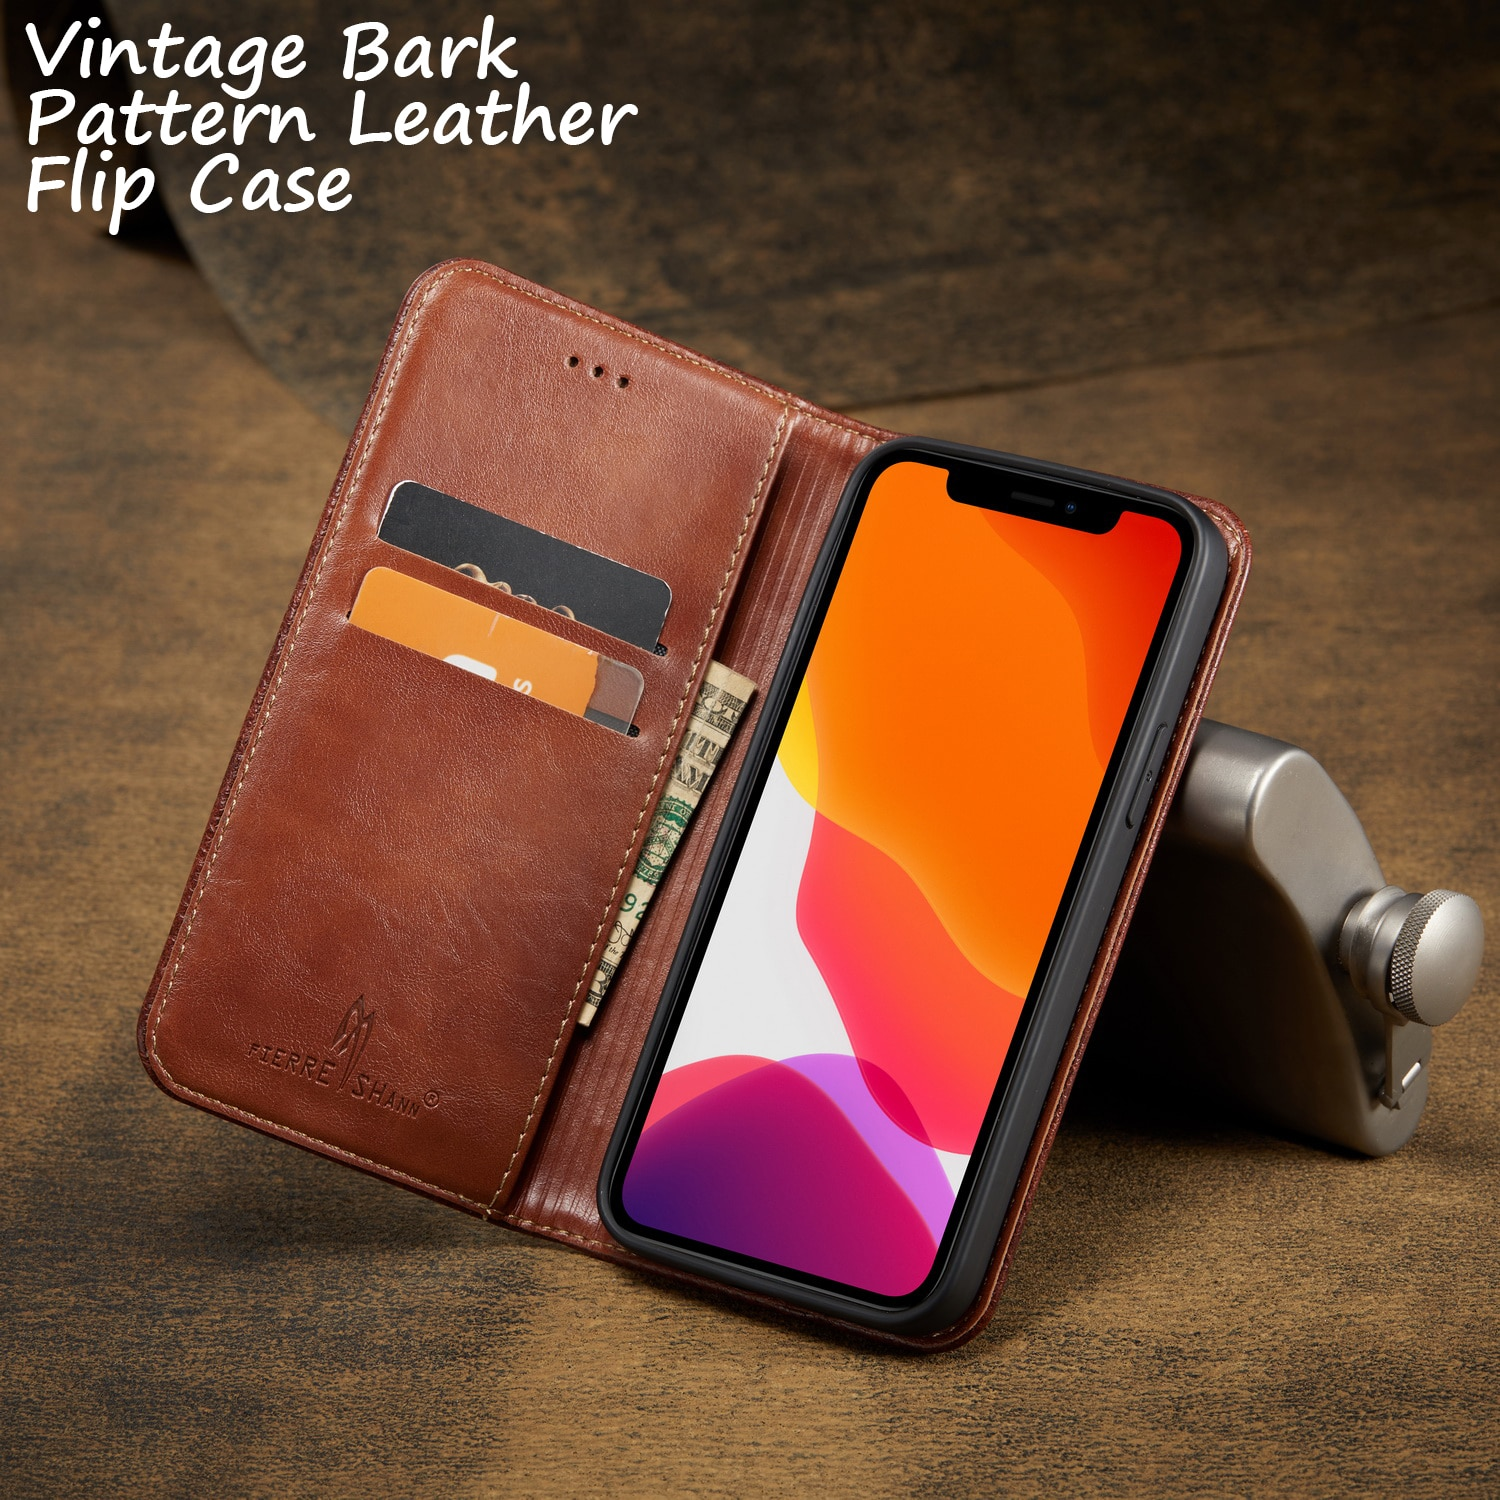 Vintage Bark Pattern Leather Flip Case For iPhone 11 12 Pro Max Mini 7 8 Plus XR X XS MAX Wallet Coque Cover